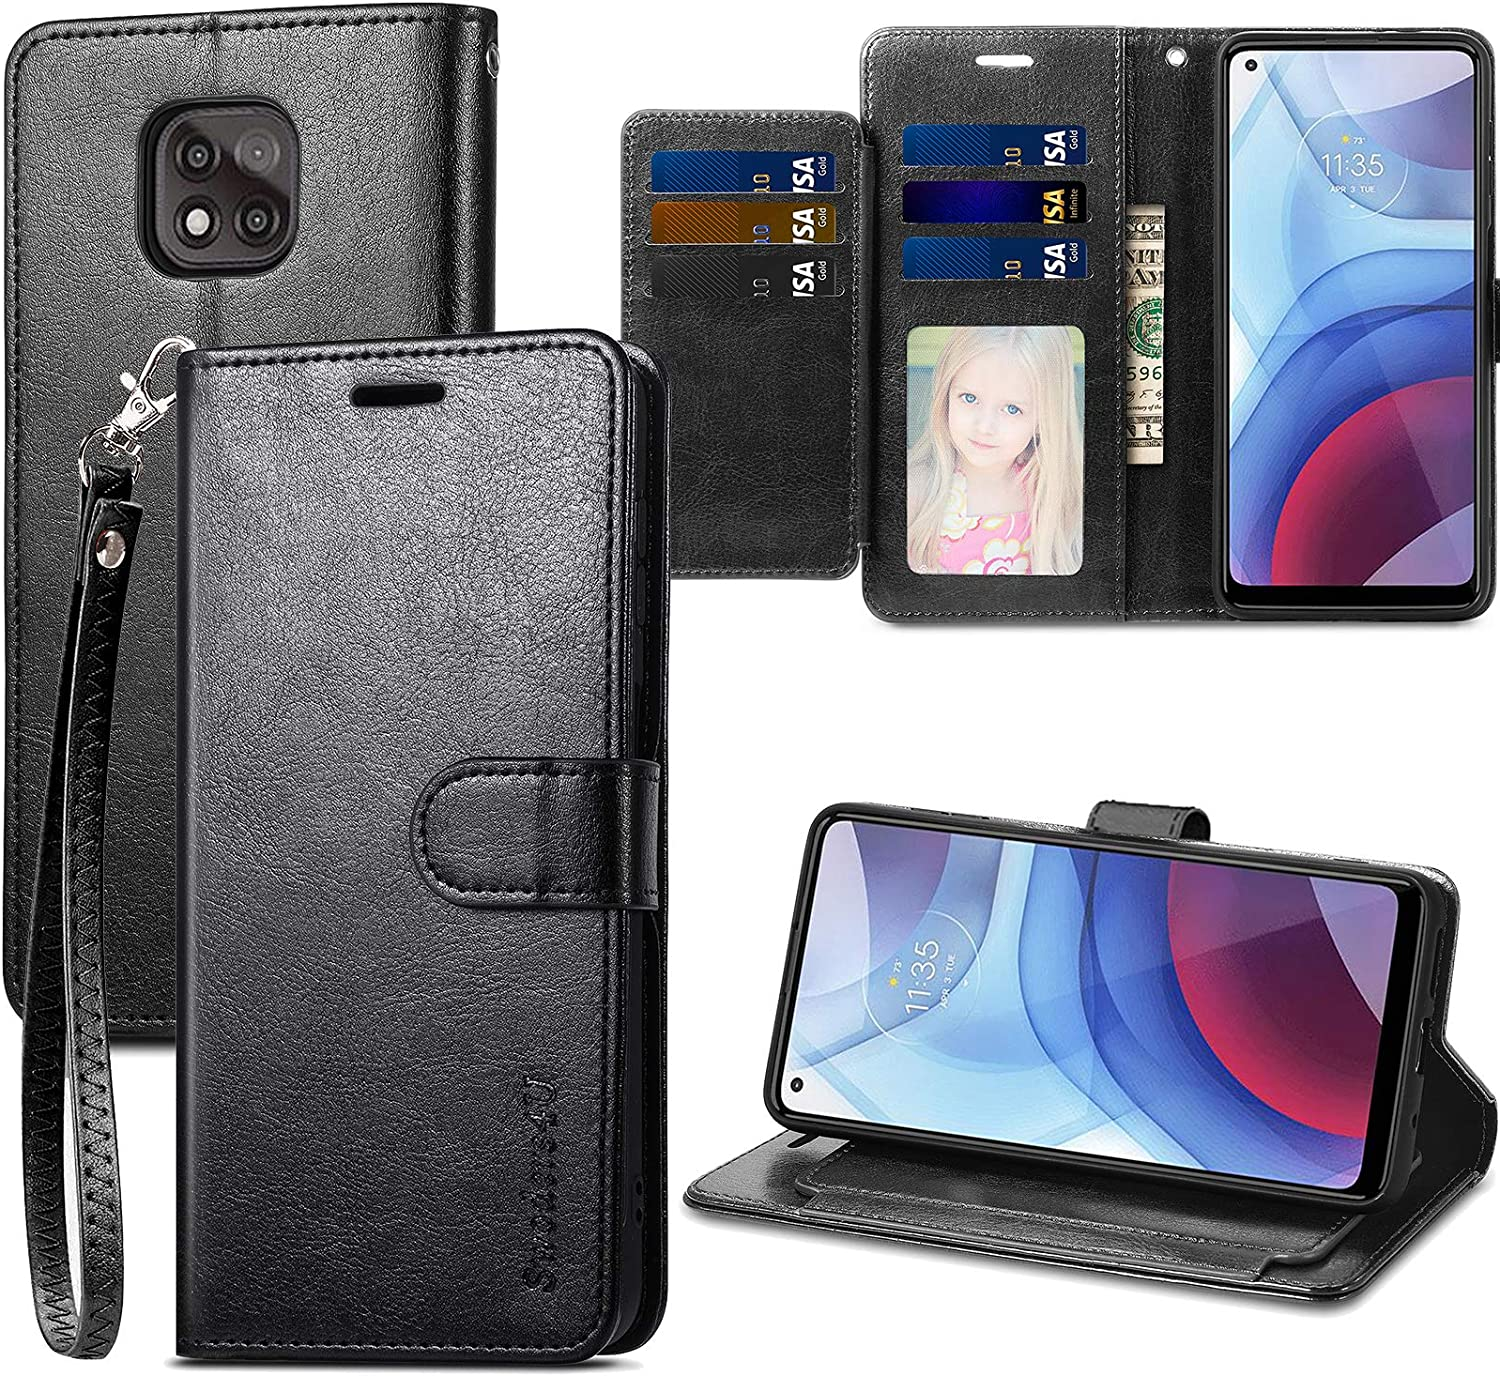 Swoders for Moto G Power 2021 Wallet Case, PU Leather with Card Holder Shockproof Soft TPU Interior Magnetic Closure Full Protection Compatible with Motorola Moto G Power 2021 - Black